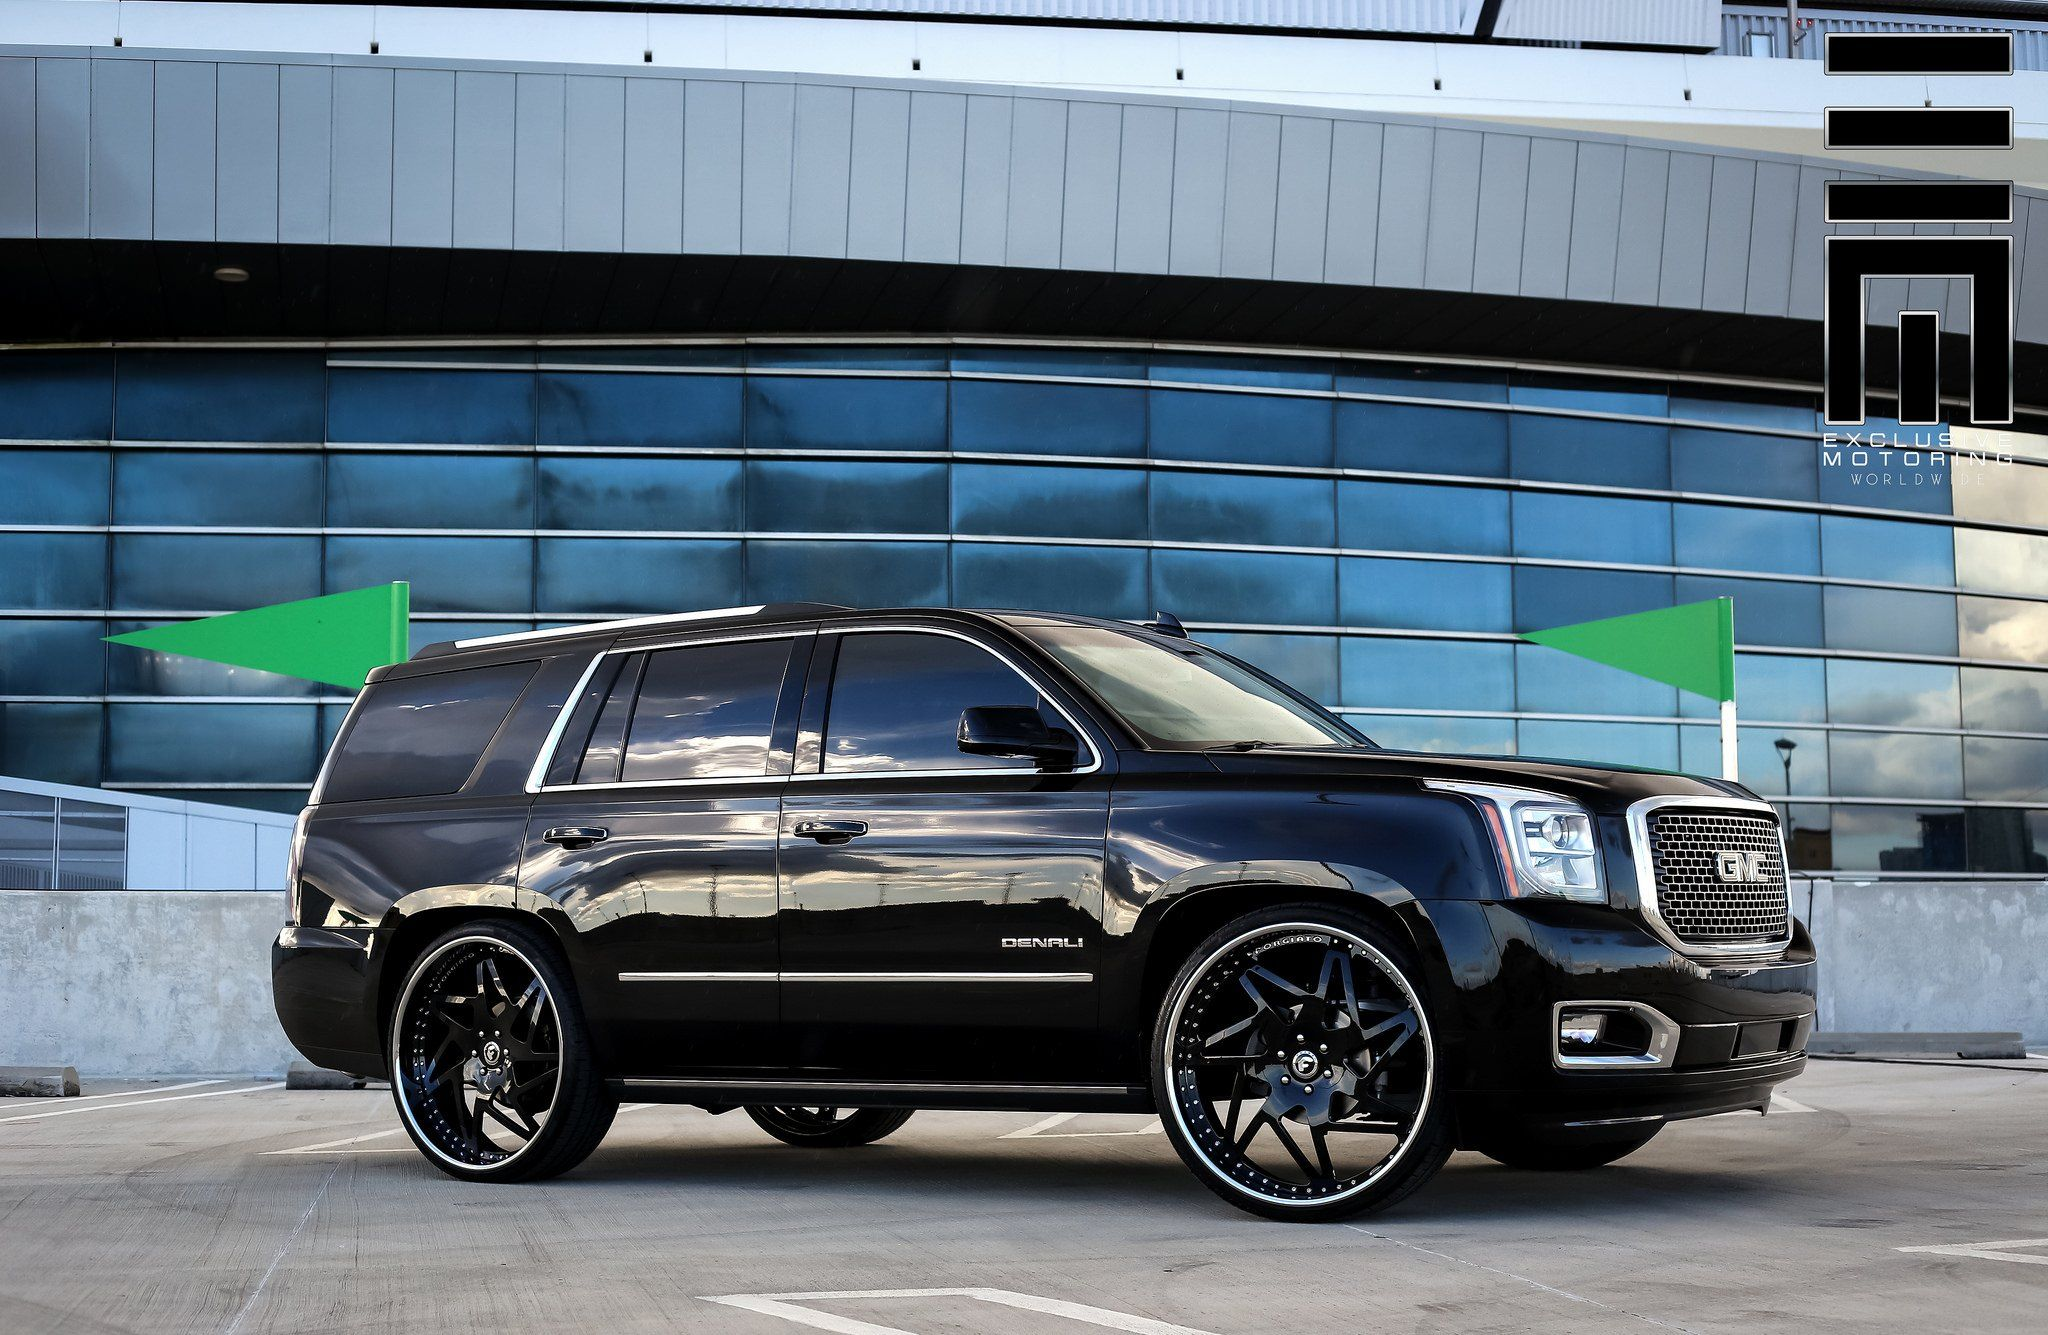 Gmc Yukon Denali On 26 Inch Rims Photo By Exclusive Motoring